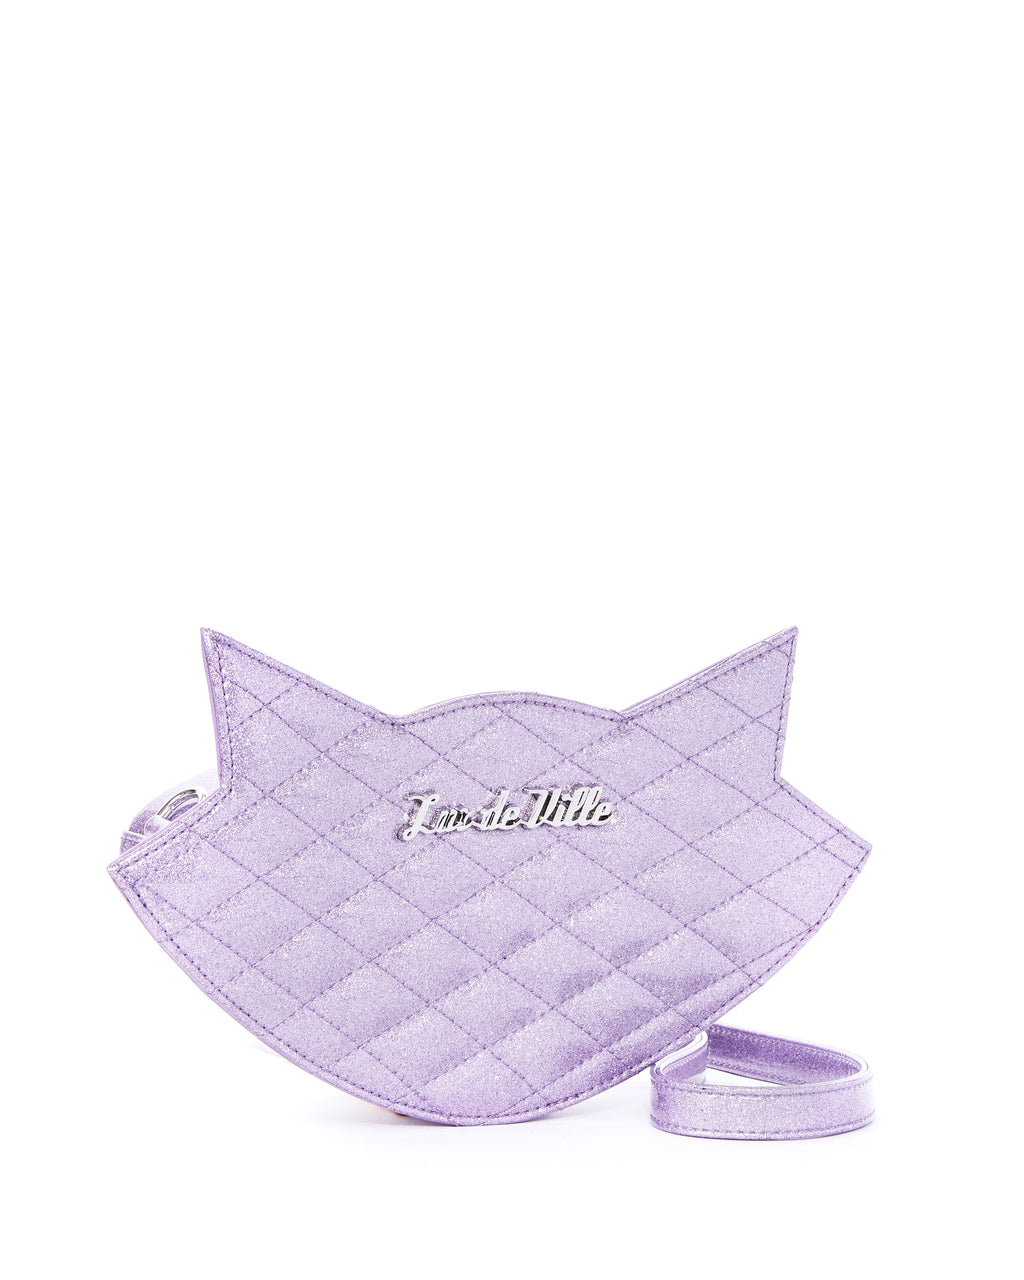 Luscious Lilac Sparkle Meowzer Sash Bag - Mini Atomic Totes